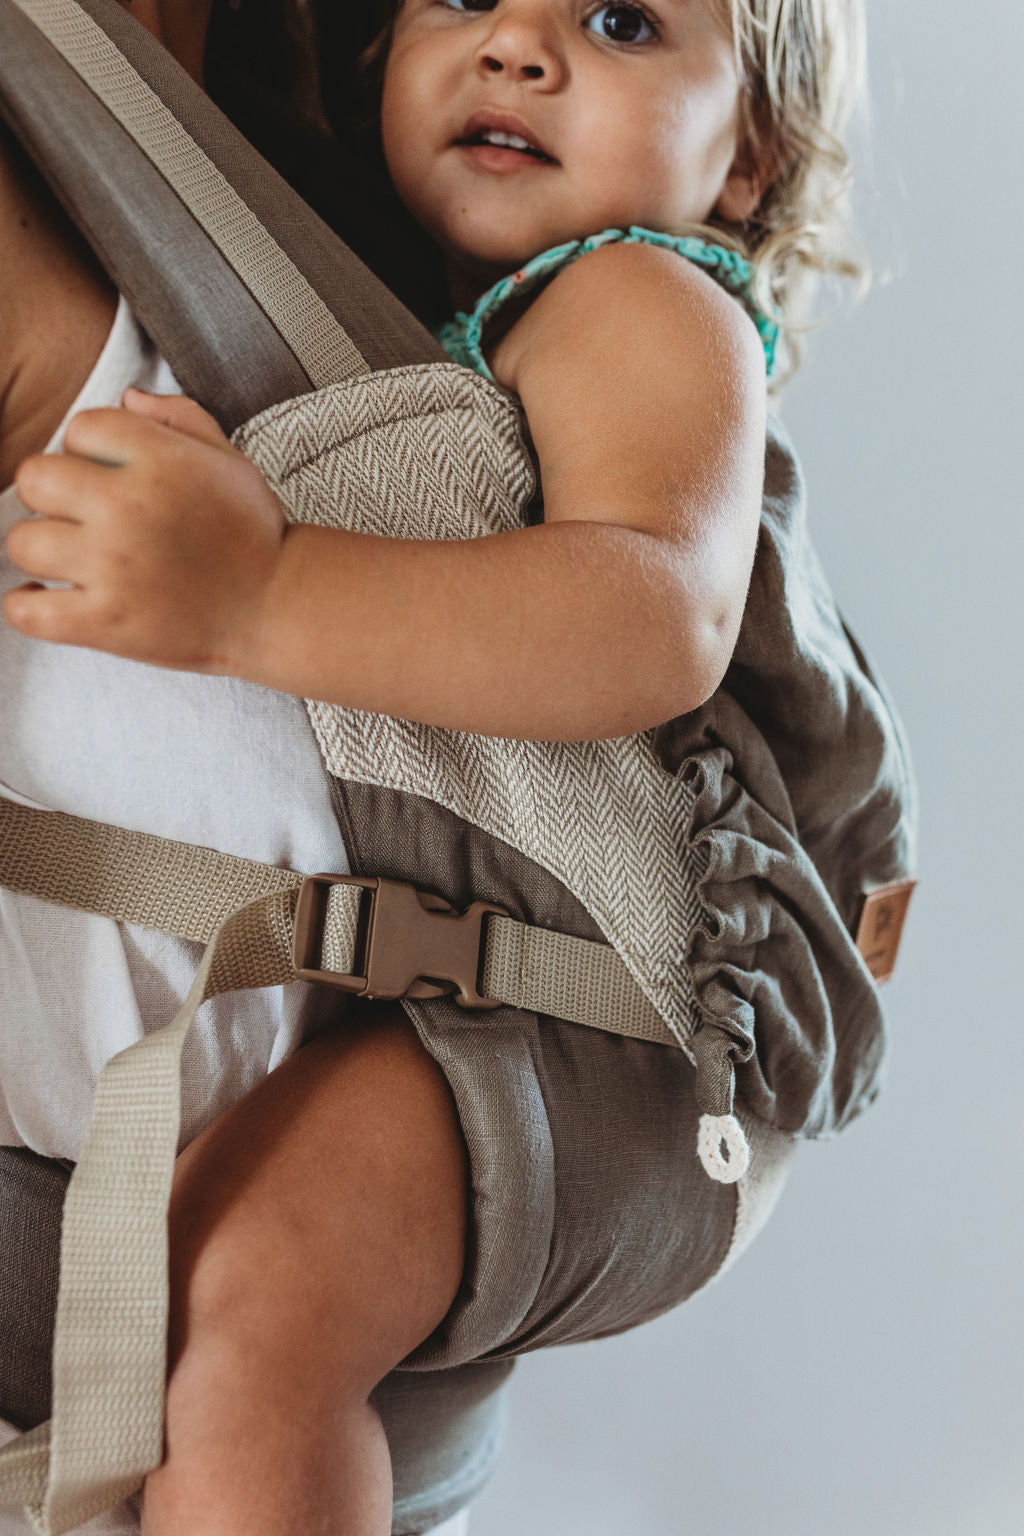 Earth Snap Baby Carrier